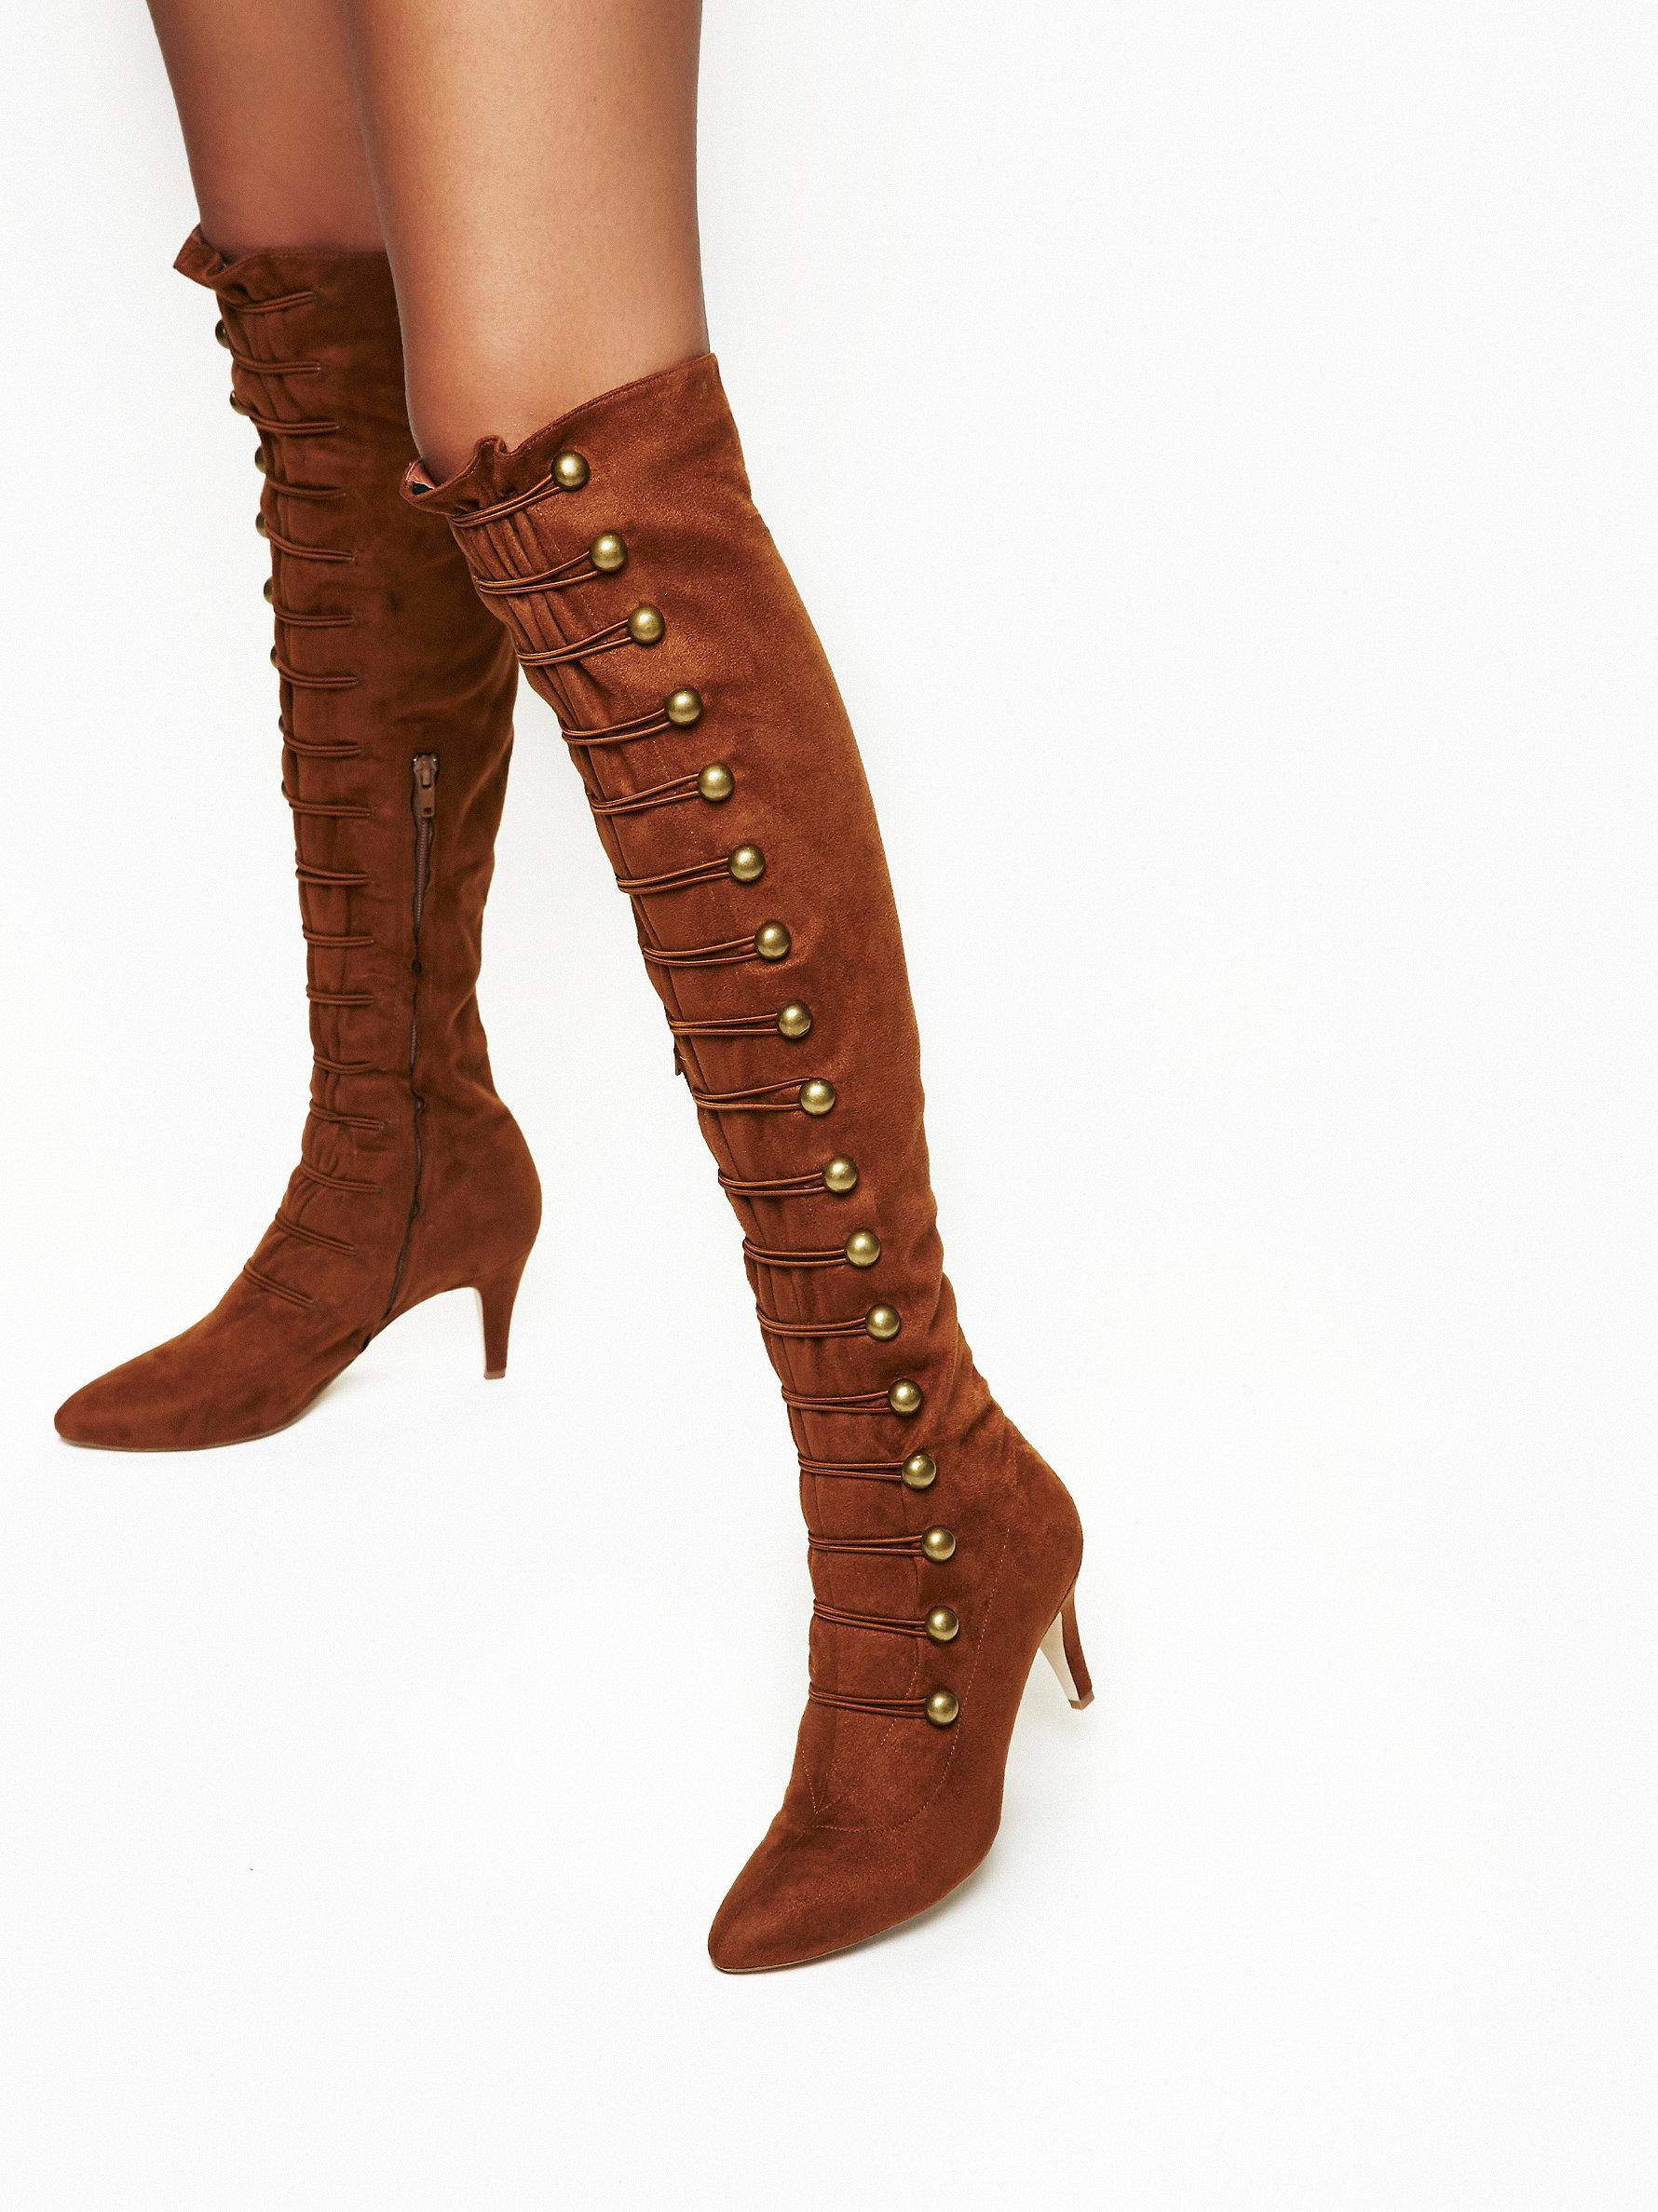 Lyst - Free people Love Stoned Kitten Heel Boot in Brown